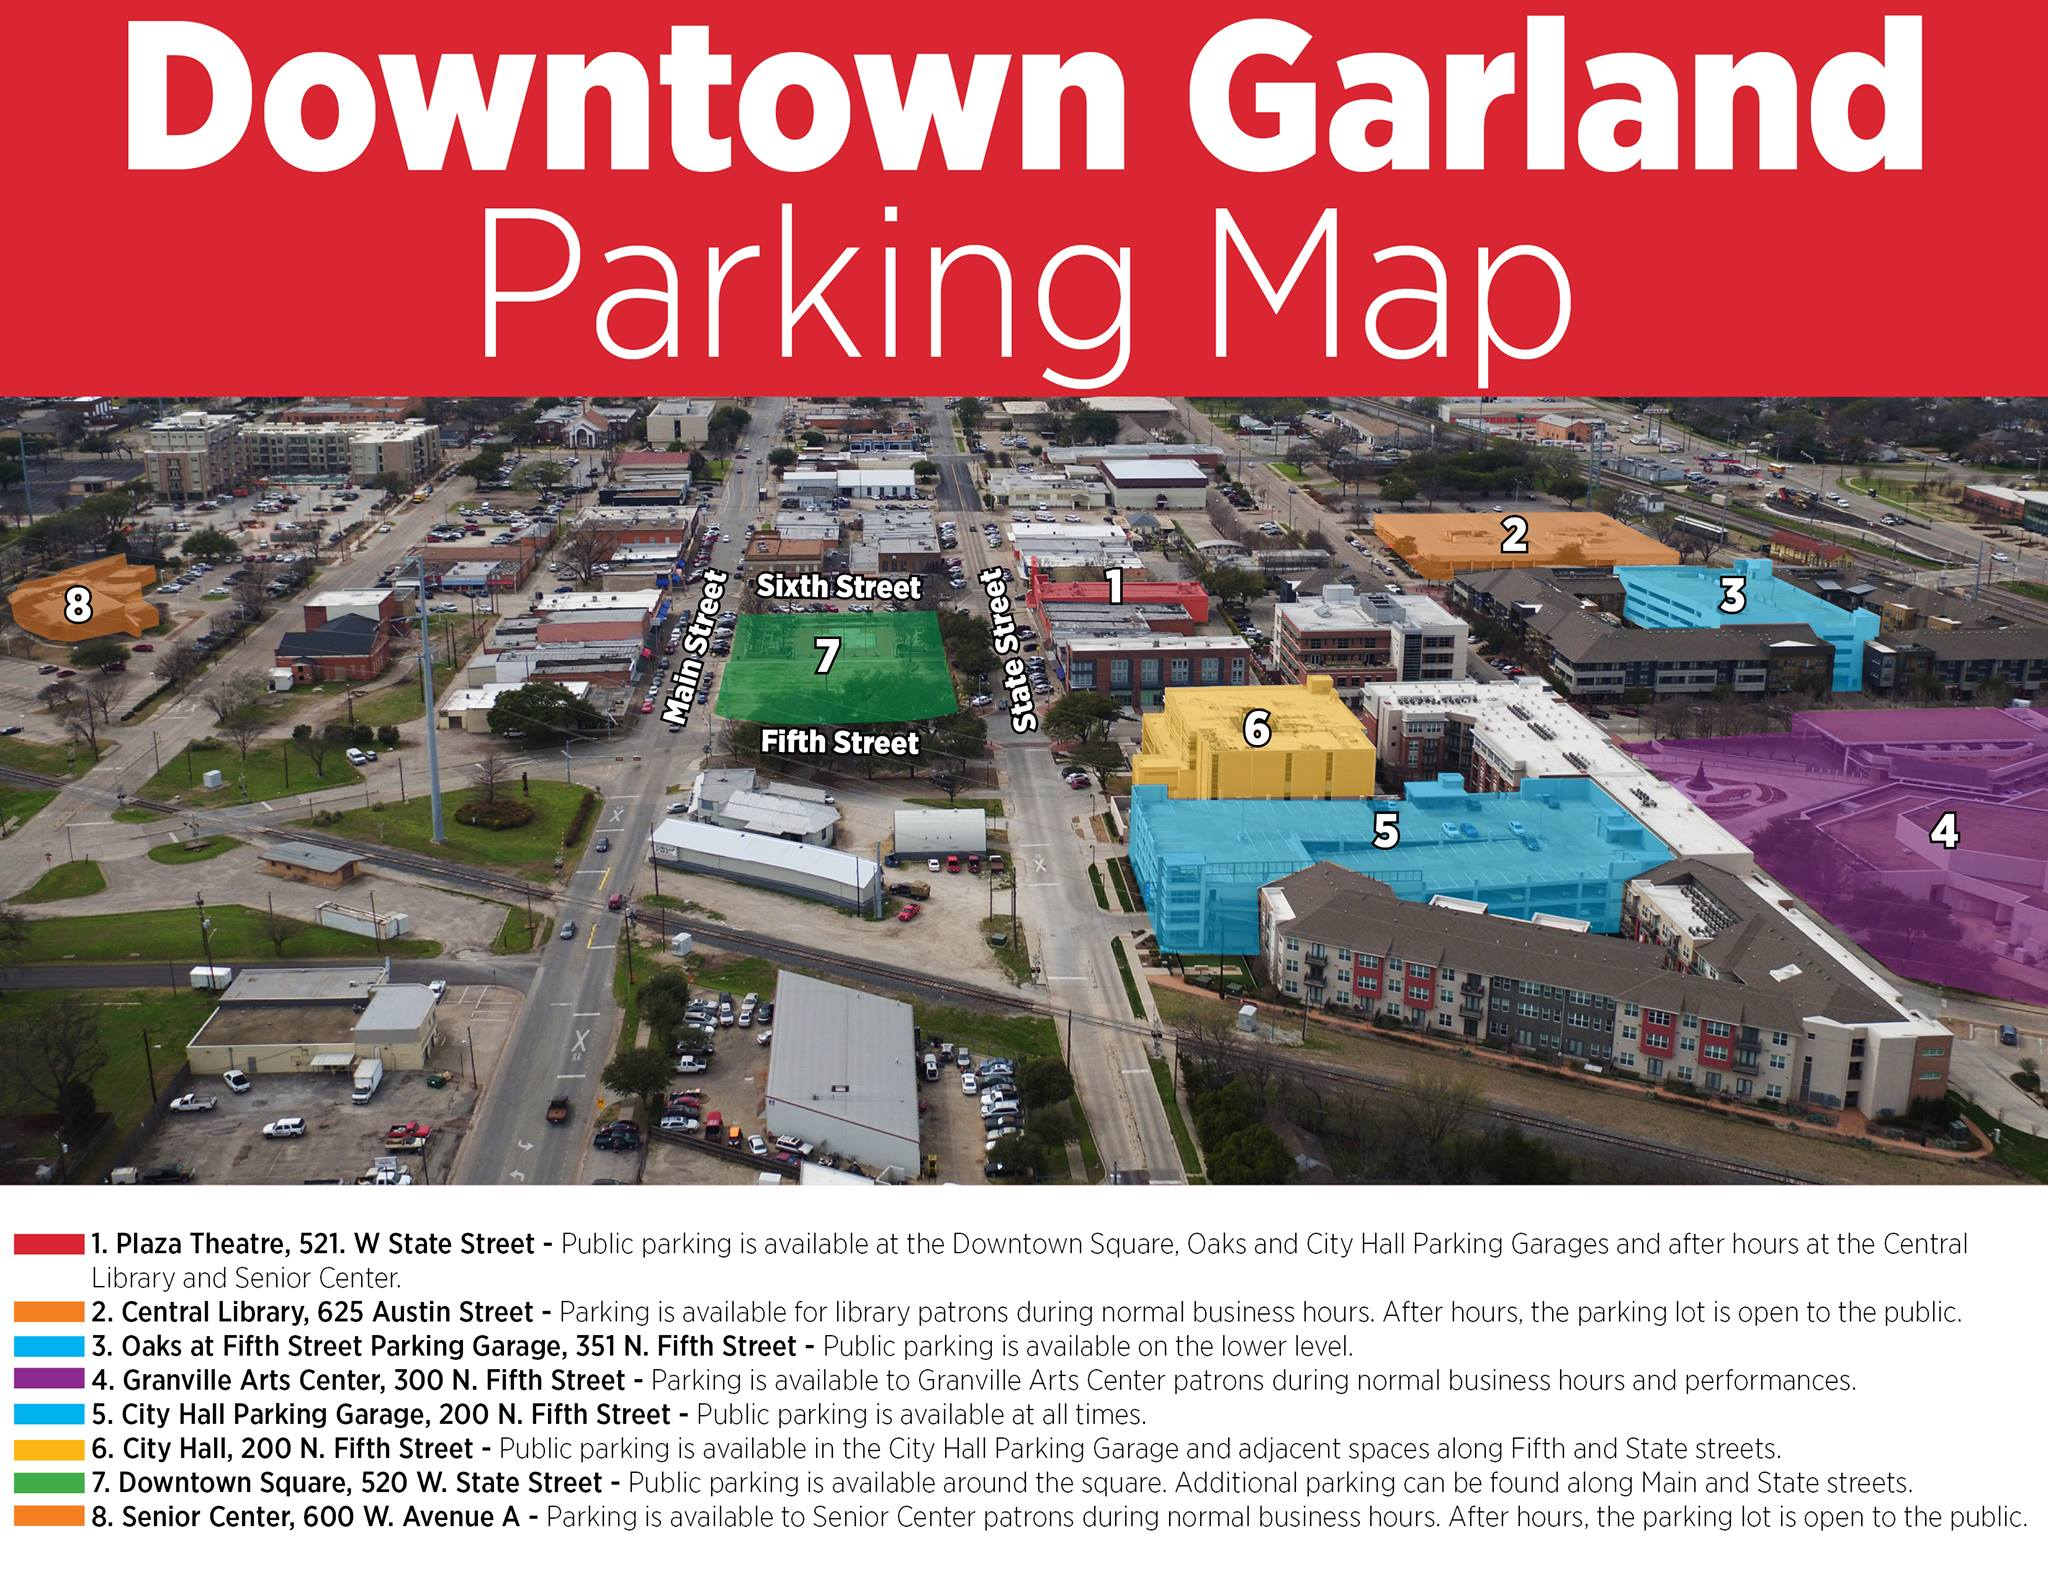 Downtown Garland Parking Map